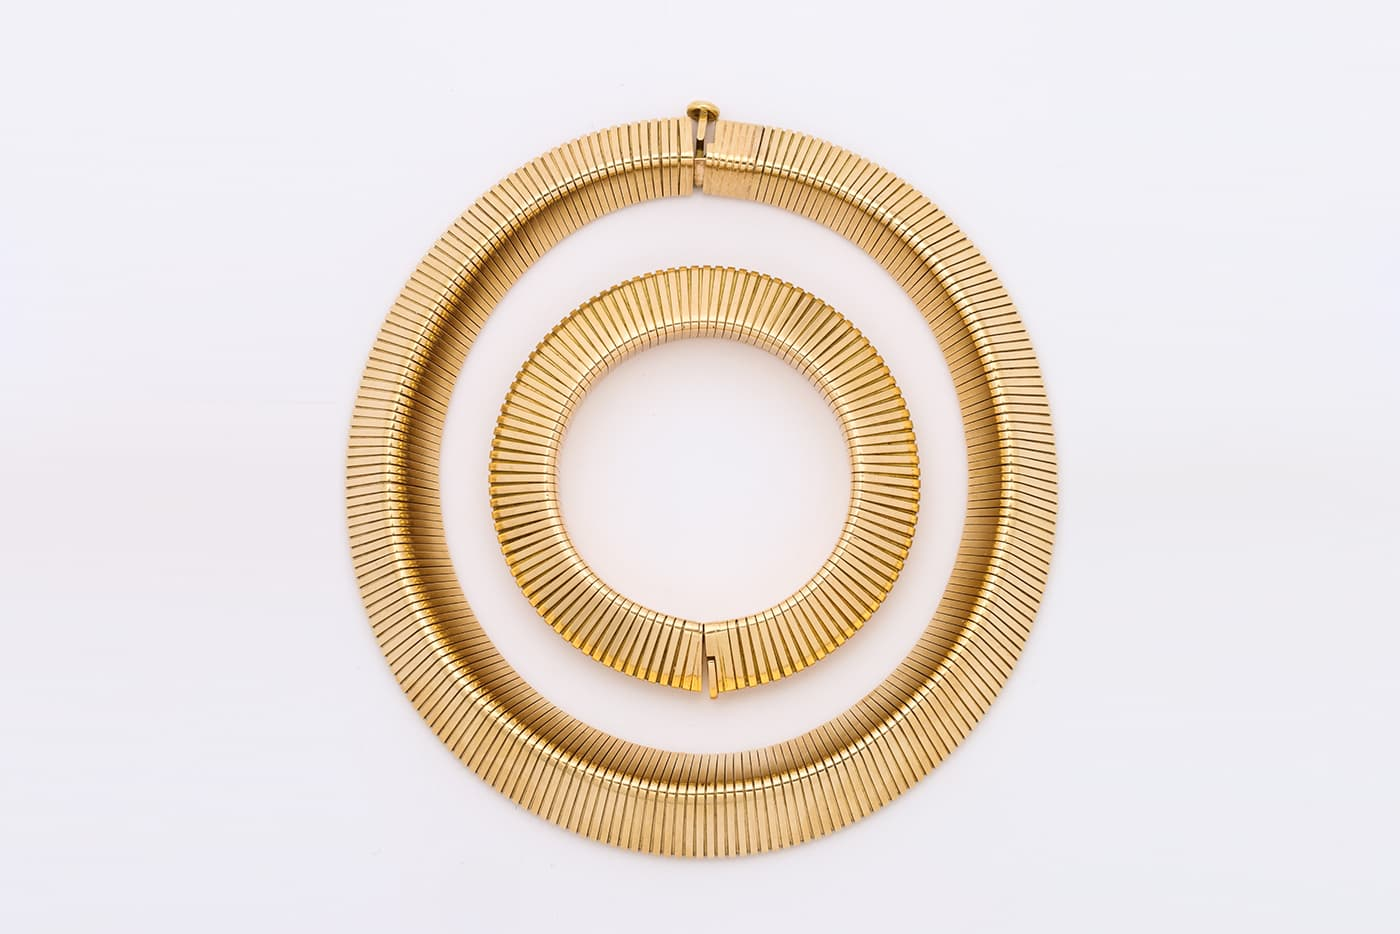 Cartier bracelet and necklace in yellow gold offered by A La Vieille Russie